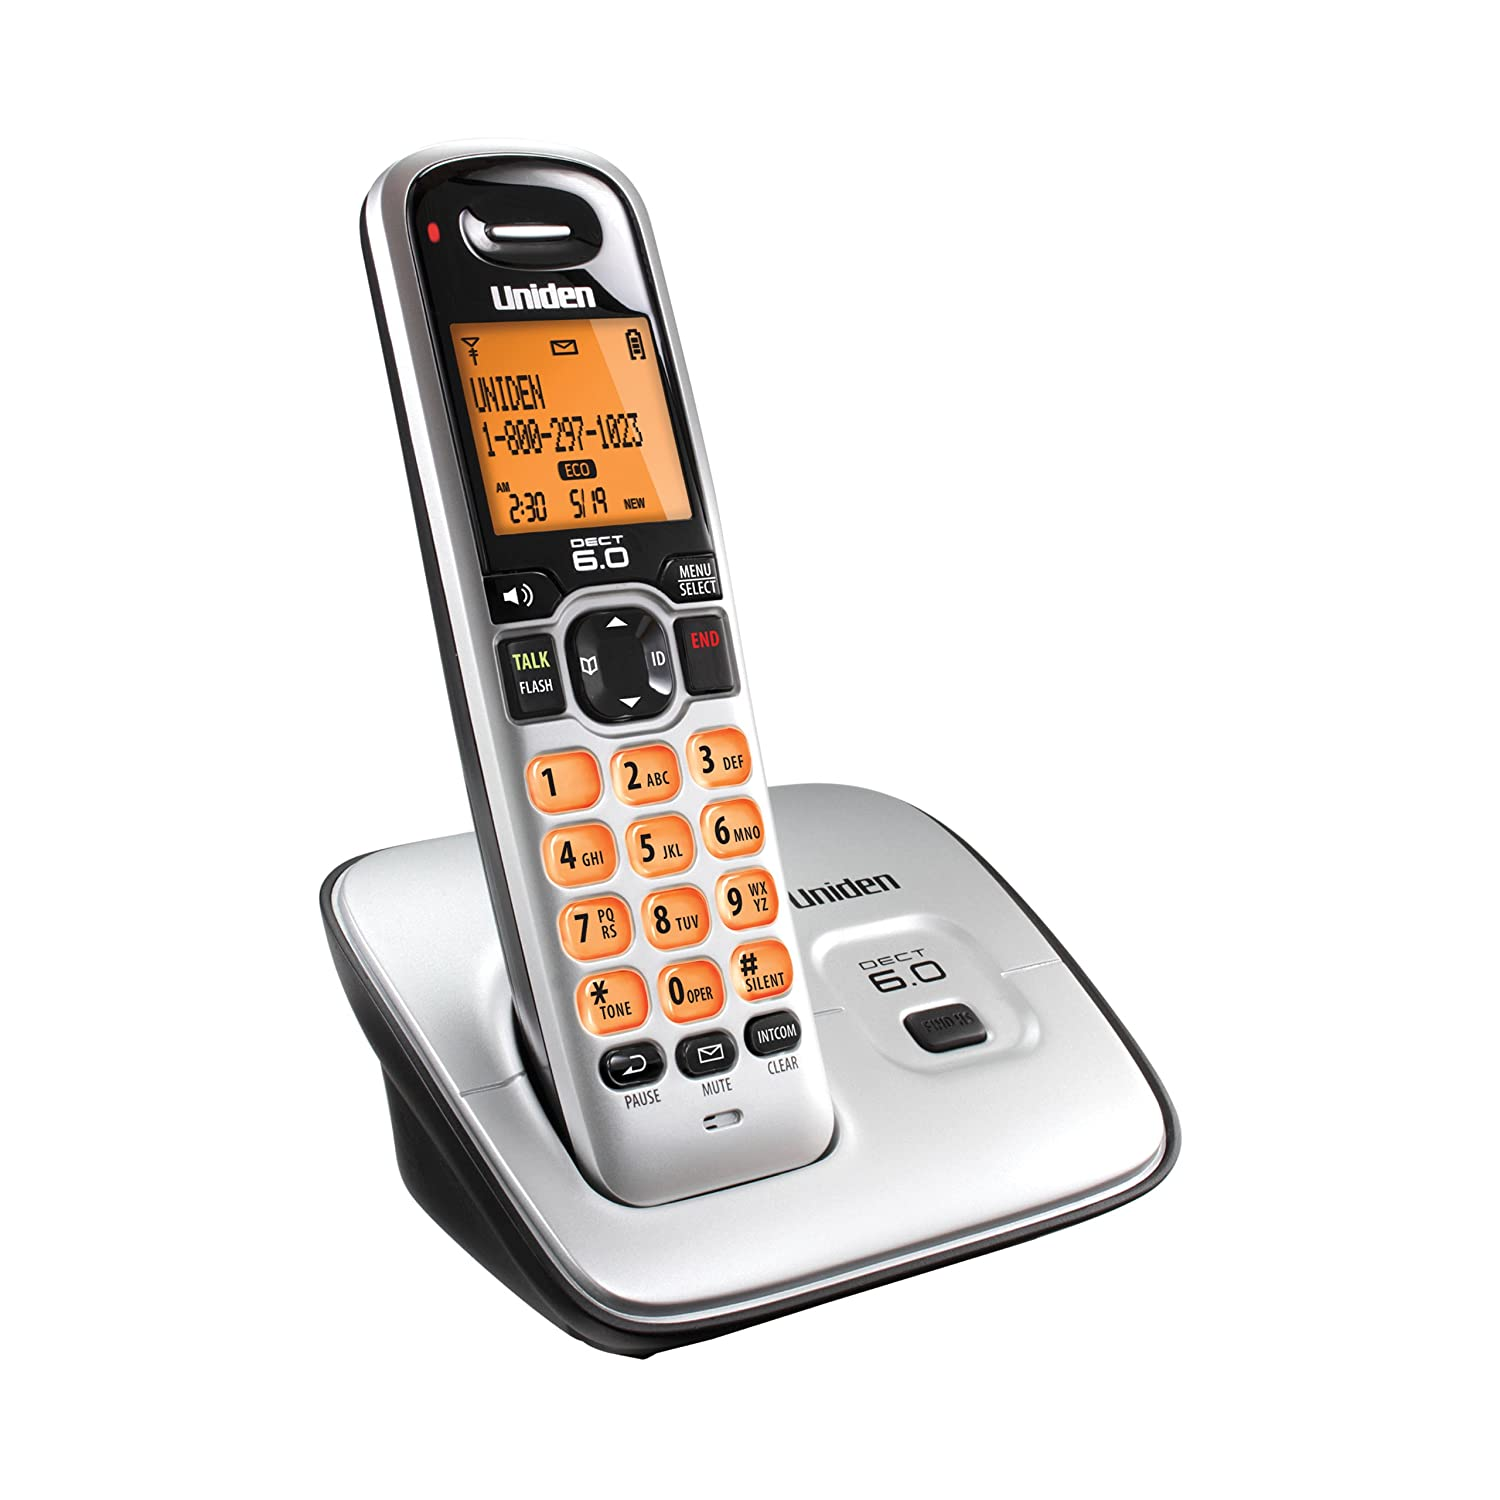 amazon com uniden d1660 dect6 0 caller id cordless handset electronics rh amazon com